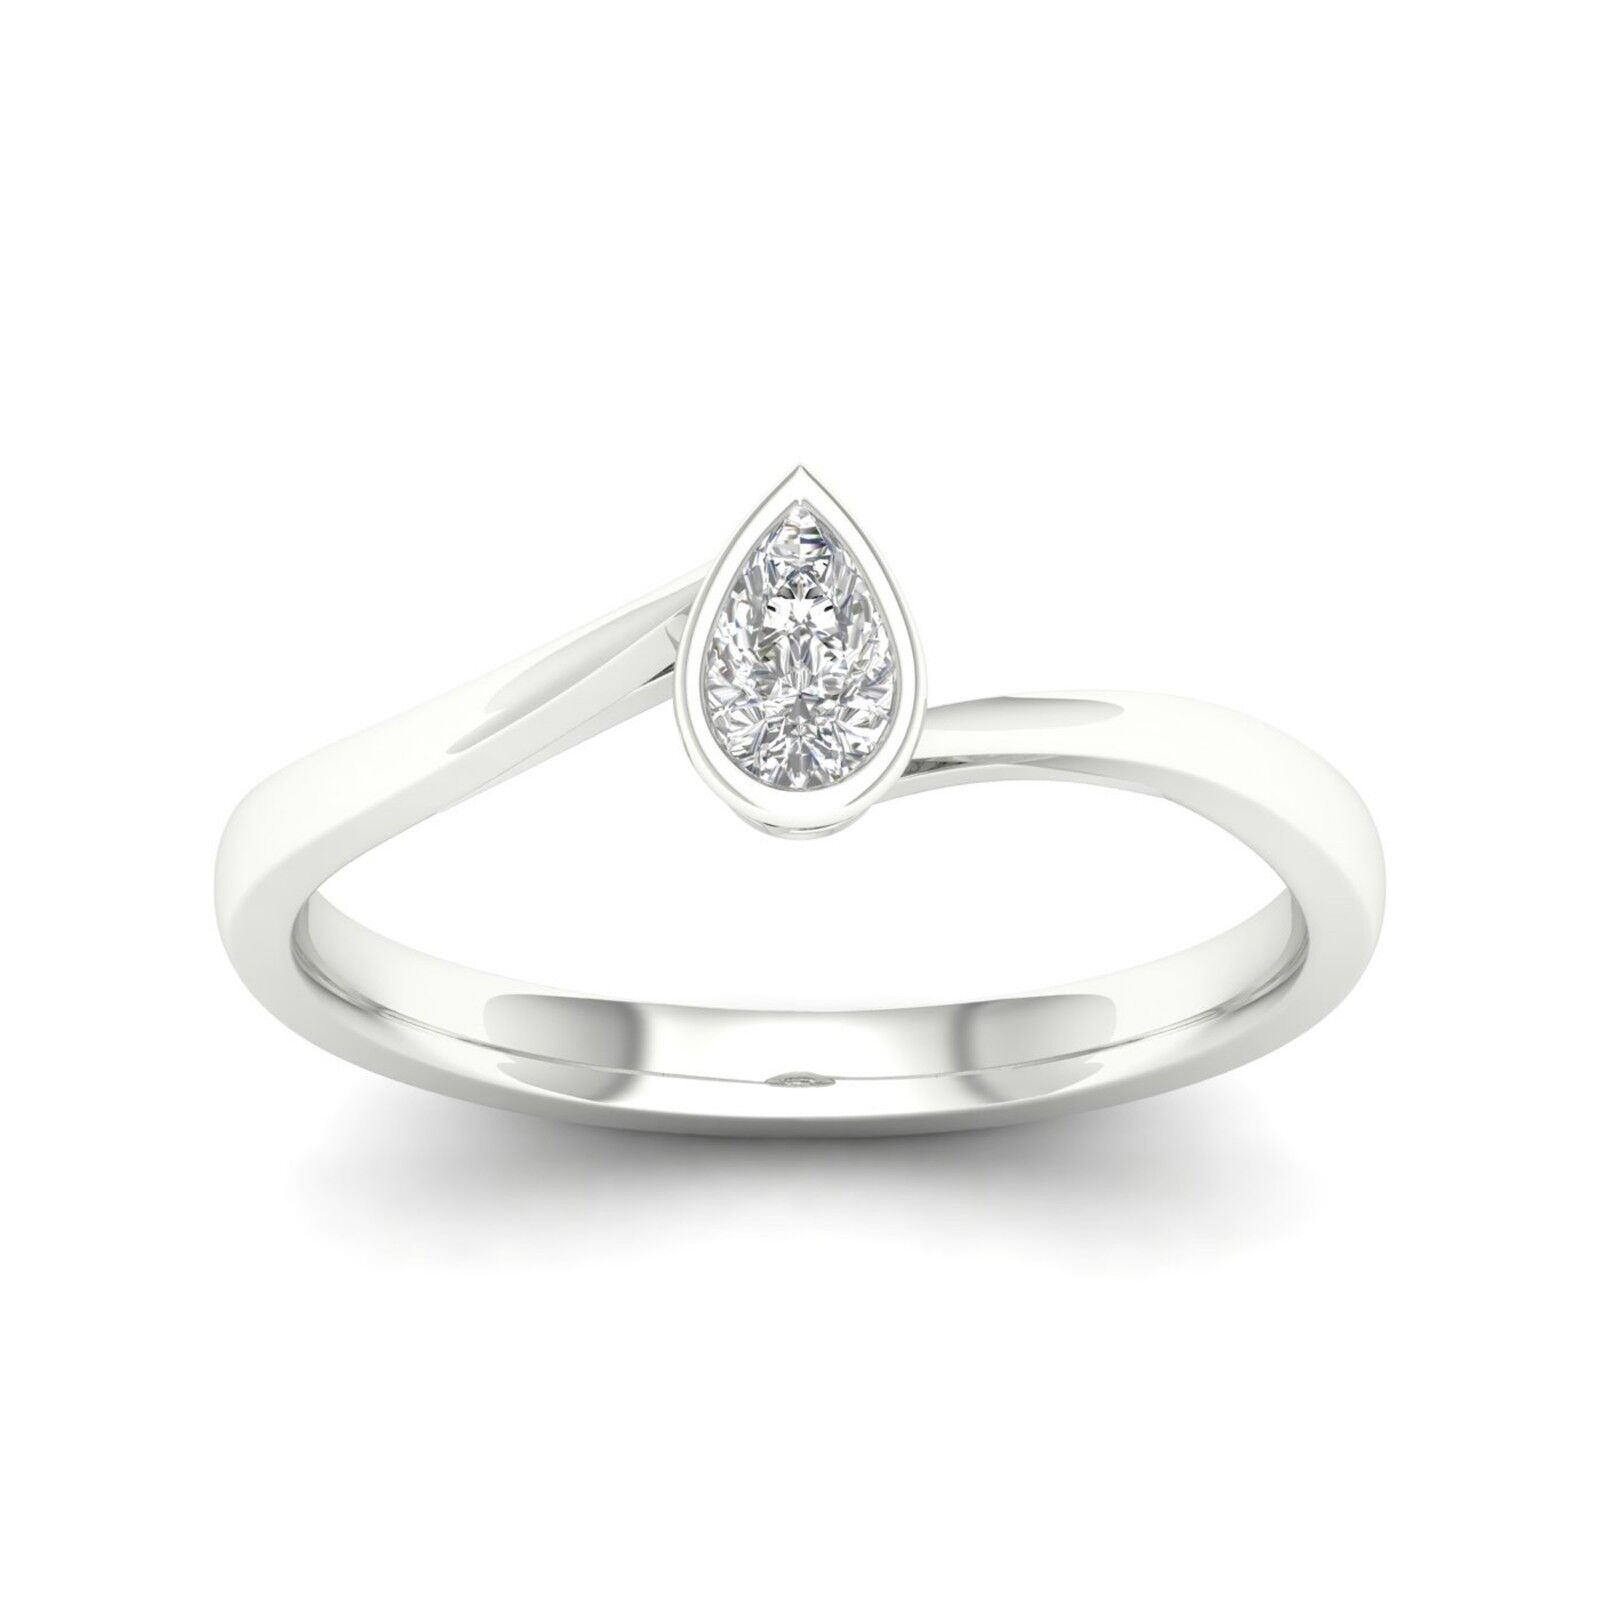 10k gold 0.20Ct TDW Pear Diamond Solitaire Promise Ring